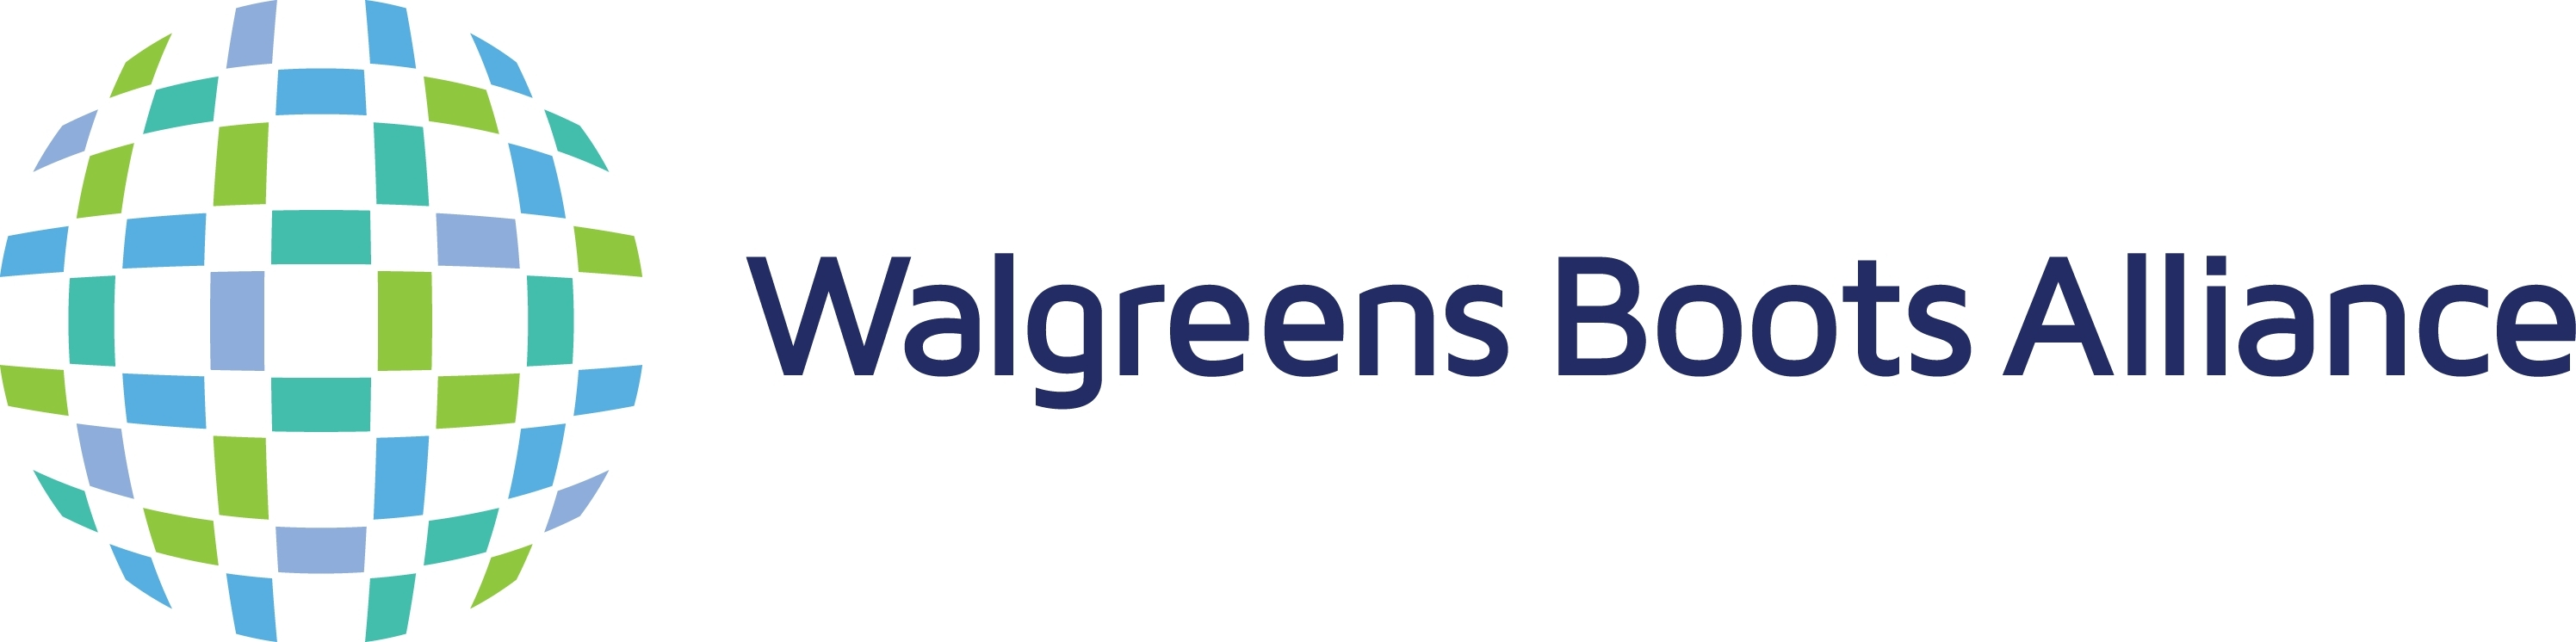 Walgreens Boots Alliance and WPP Announce Global Marketing and  Communications Partnership   Business Wire. Walgreens Boots Alliance and WPP Announce Global Marketing and